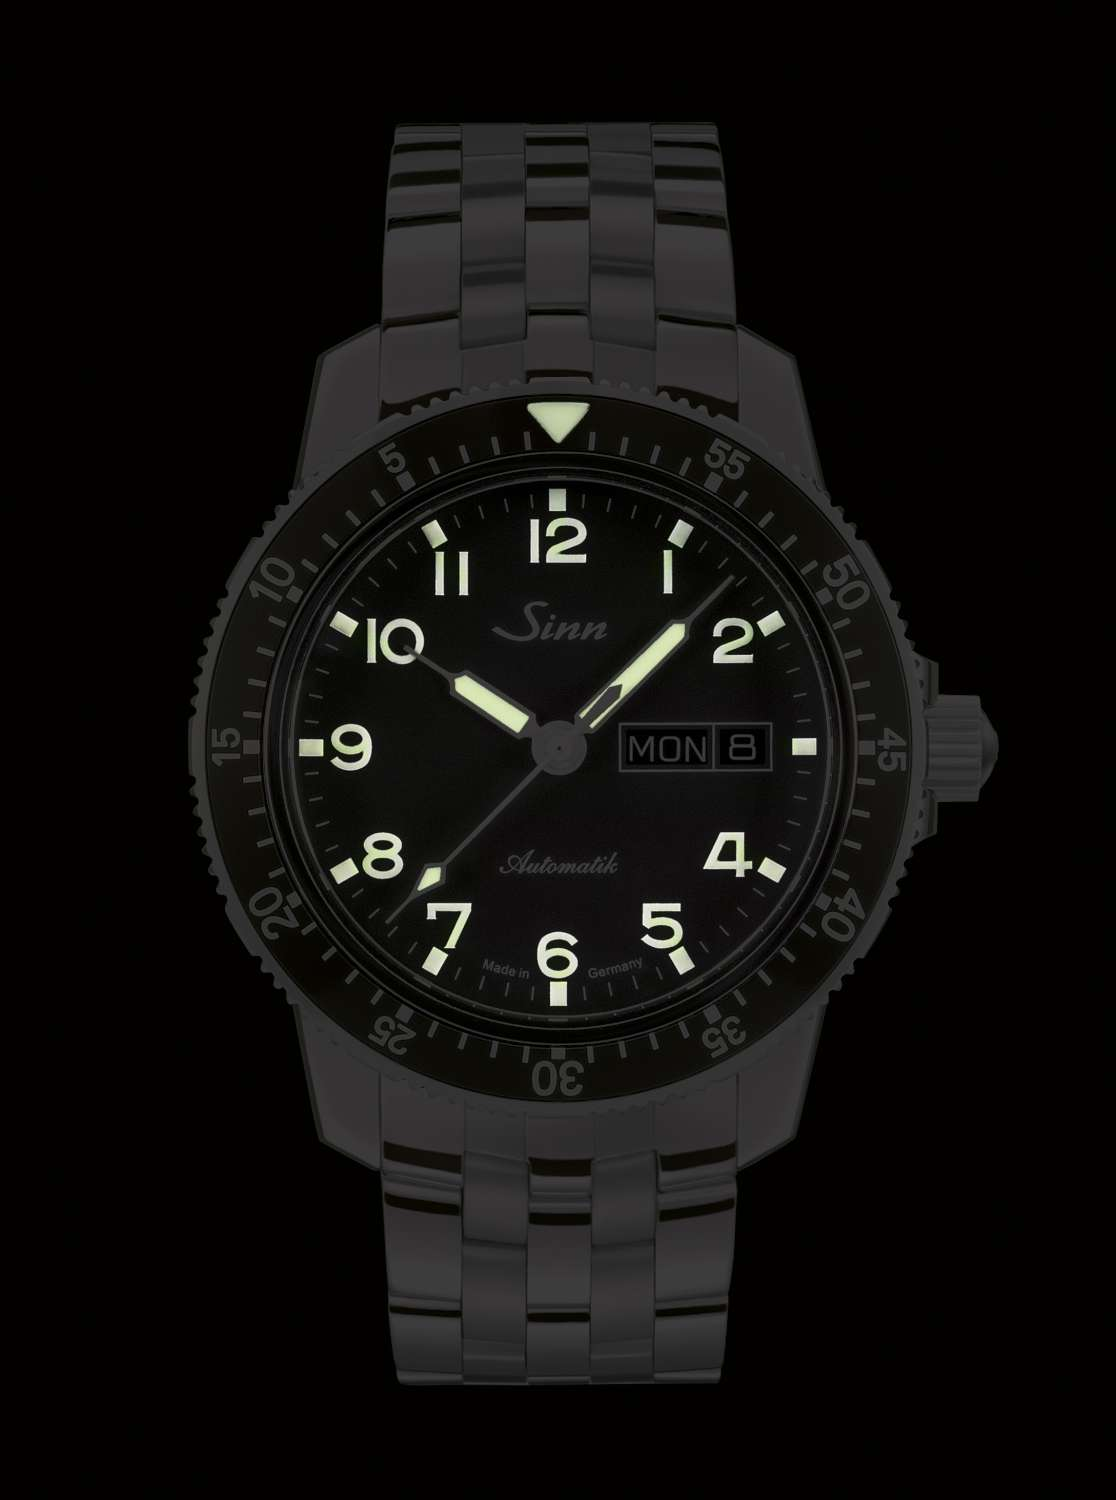 Sinn replica watches